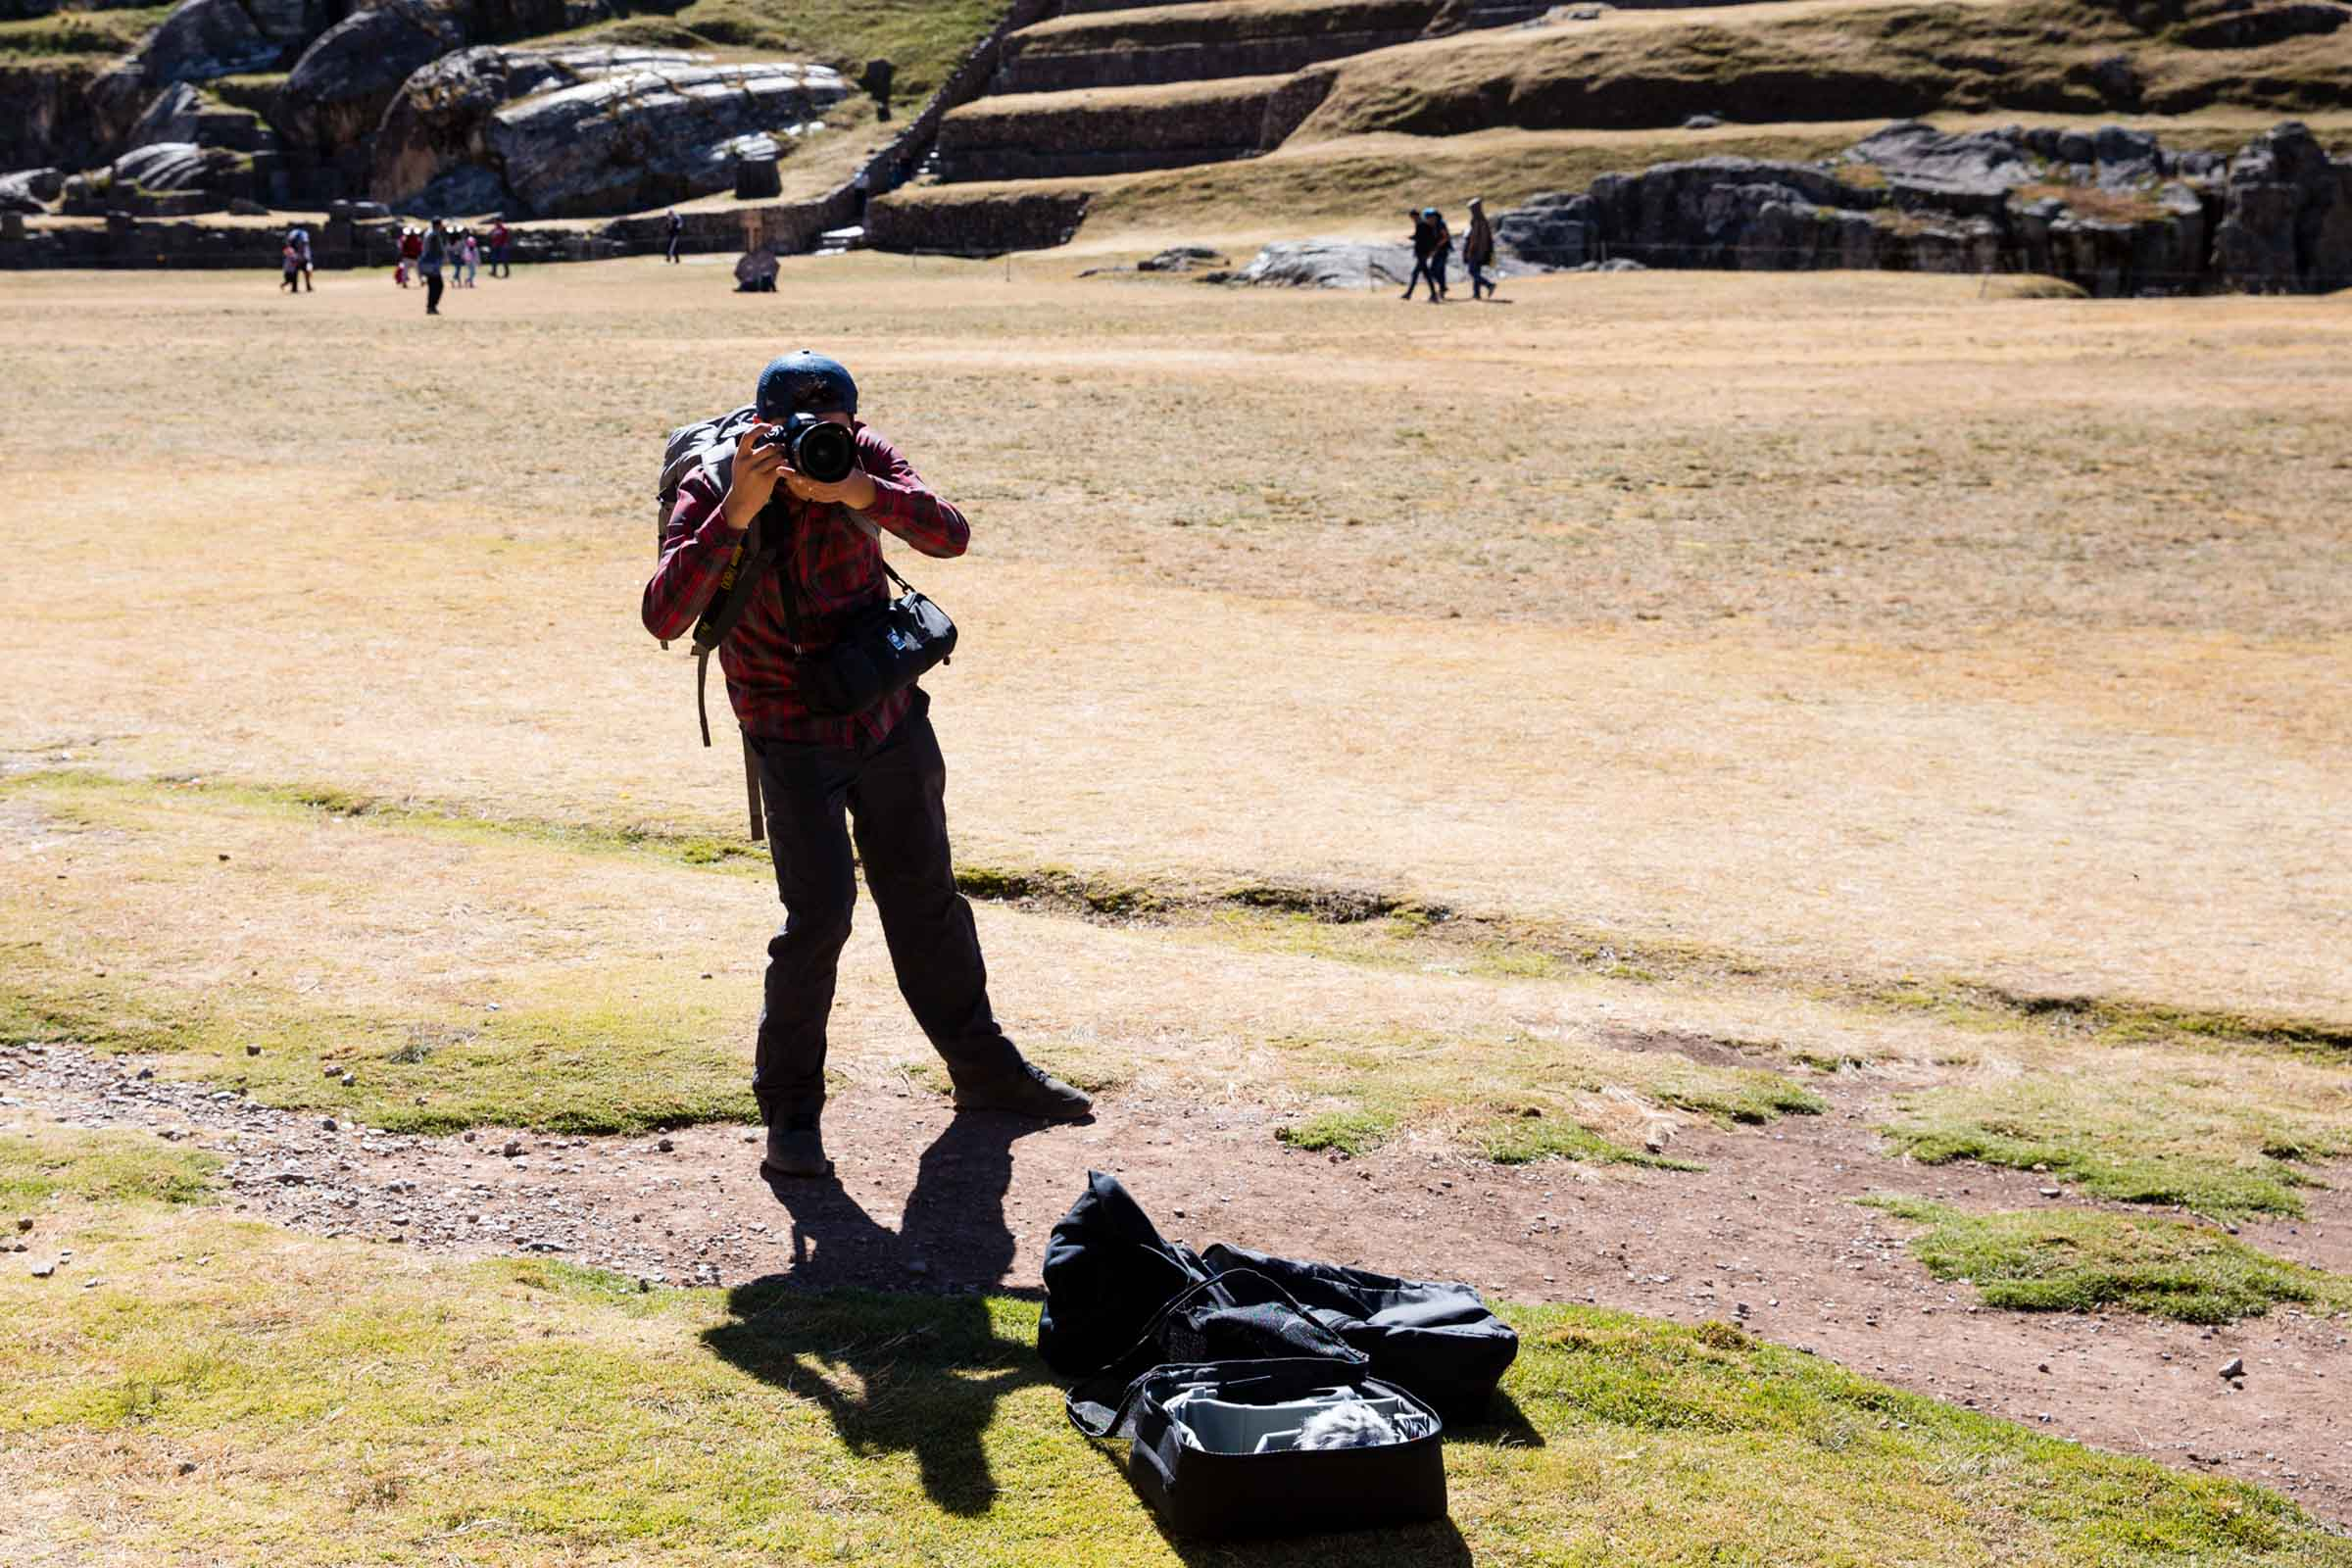 jimmy-nelson-foundation-peru-quechua-behind-the-scenes-gallery-11